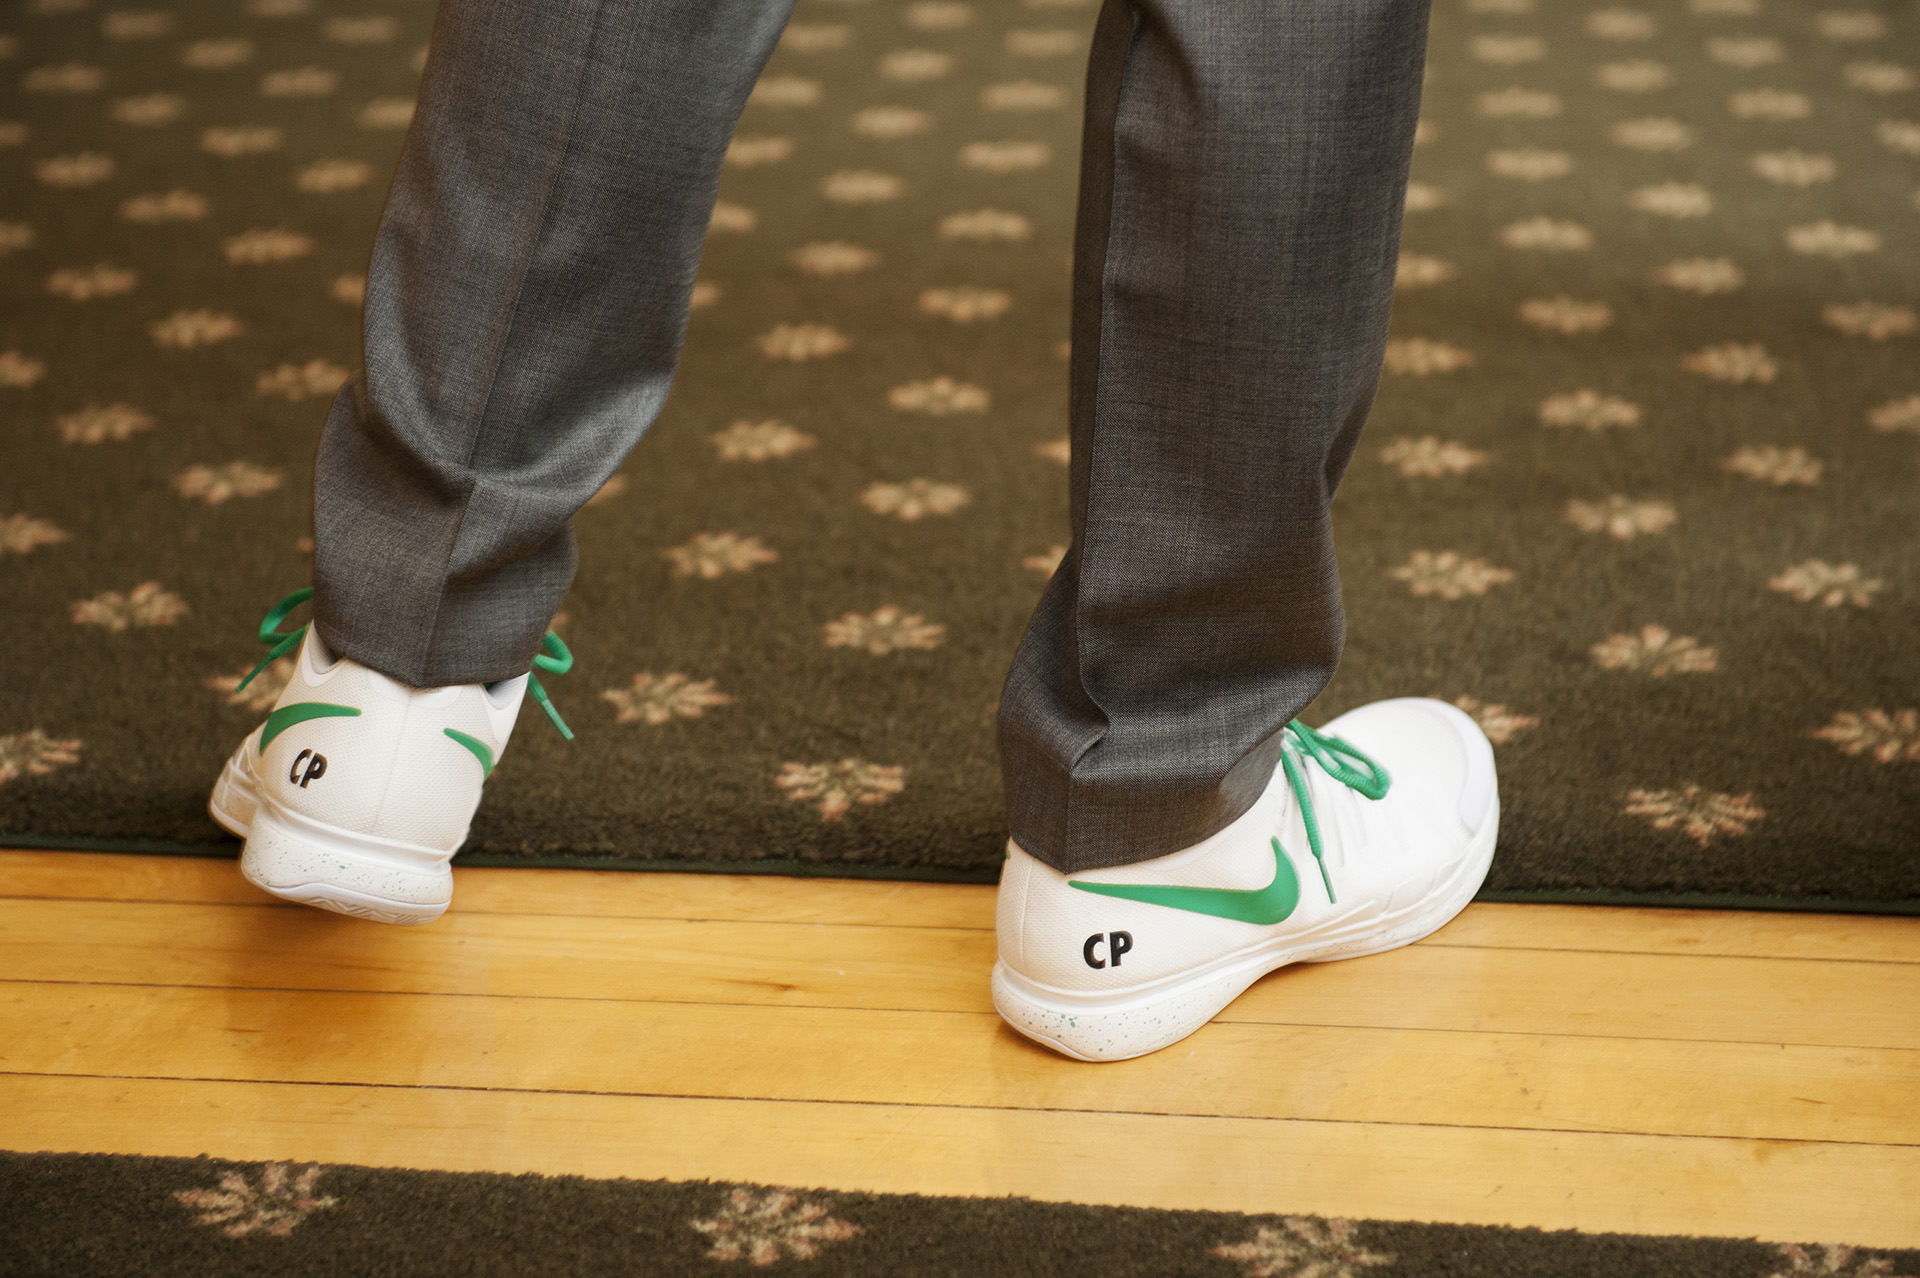 Massachusetts Wedding Detail Picture | The groom's initials mark his custom Nike tennis shoes